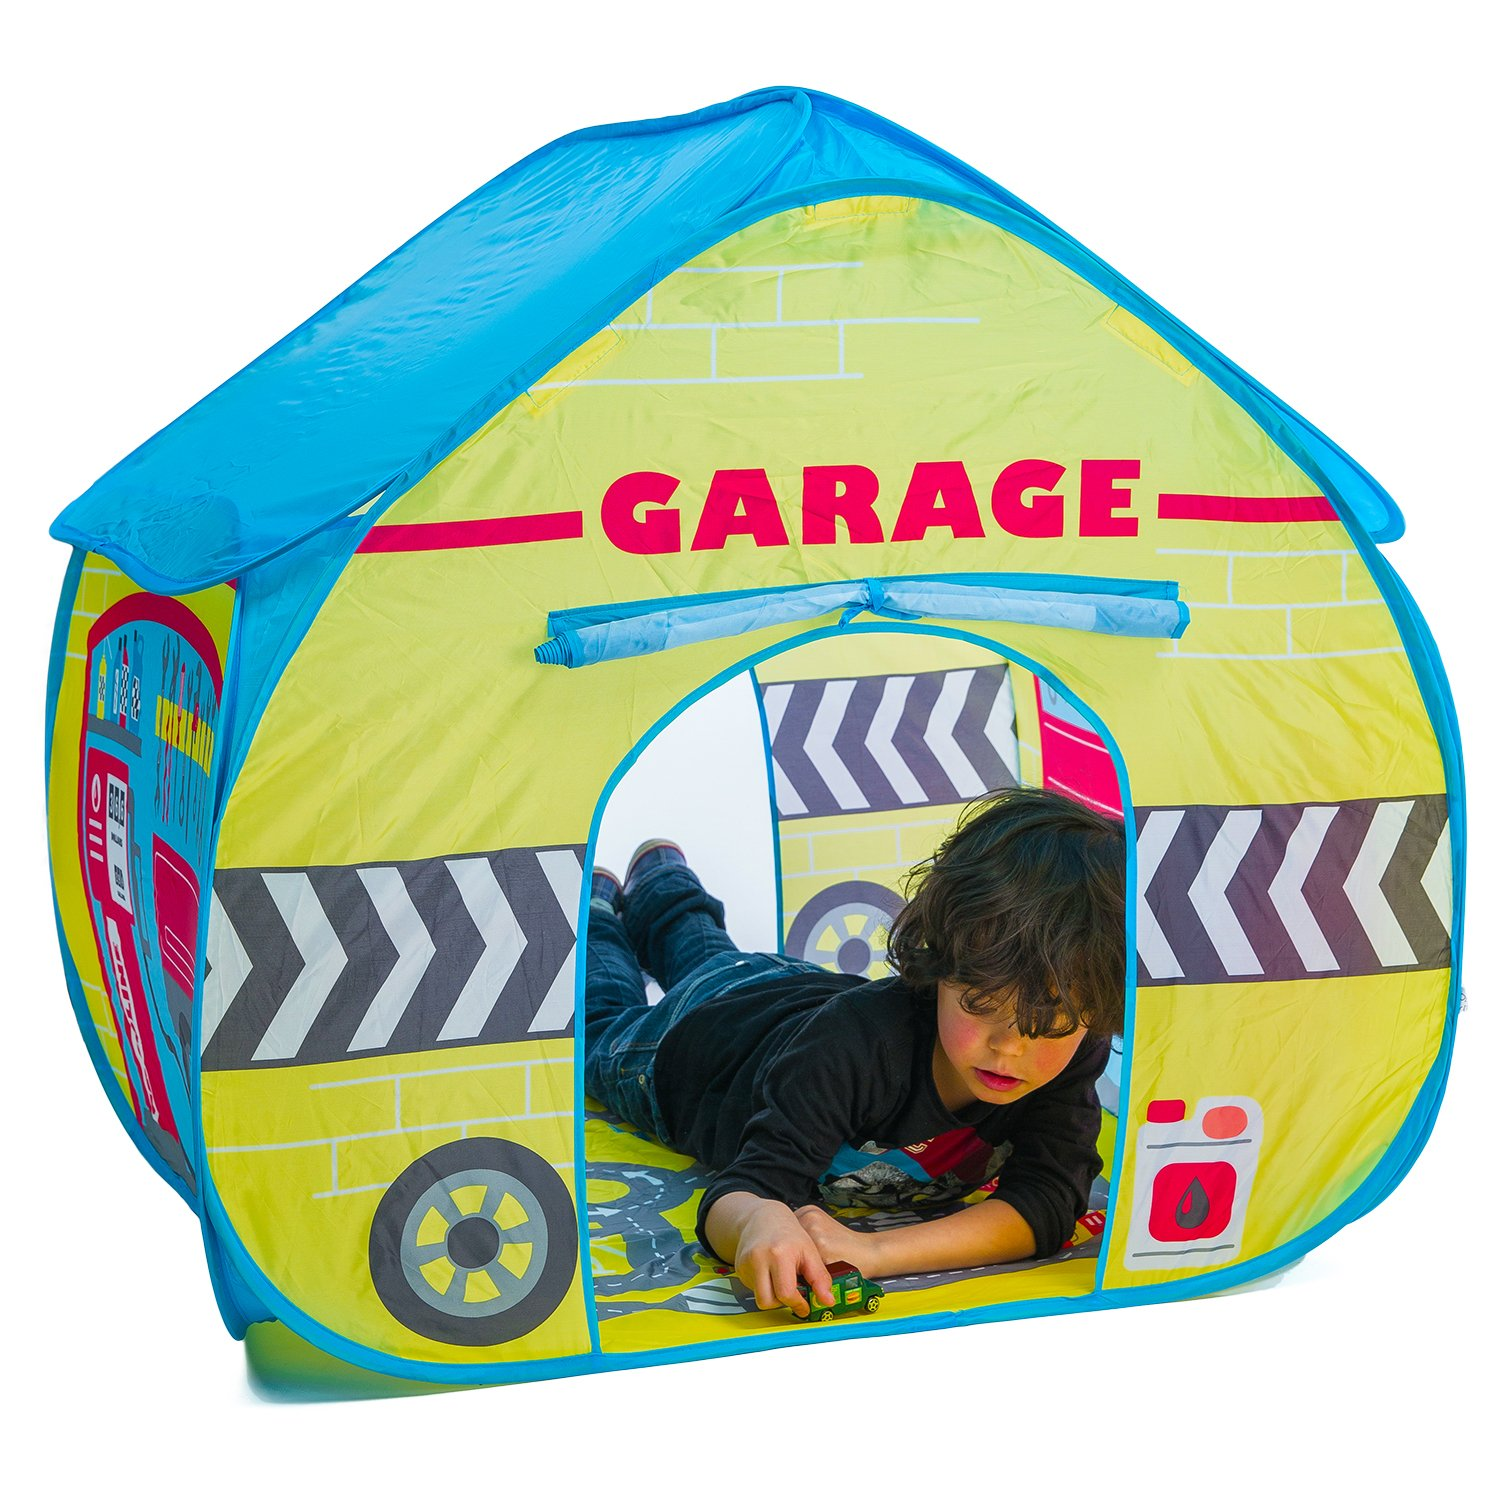 Amazon.com Fun2Give Pop-It-Up Garage Tent with Road Playmat Playhouse Toys u0026 Games  sc 1 st  Amazon.com & Amazon.com: Fun2Give Pop-It-Up Garage Tent with Road Playmat ...